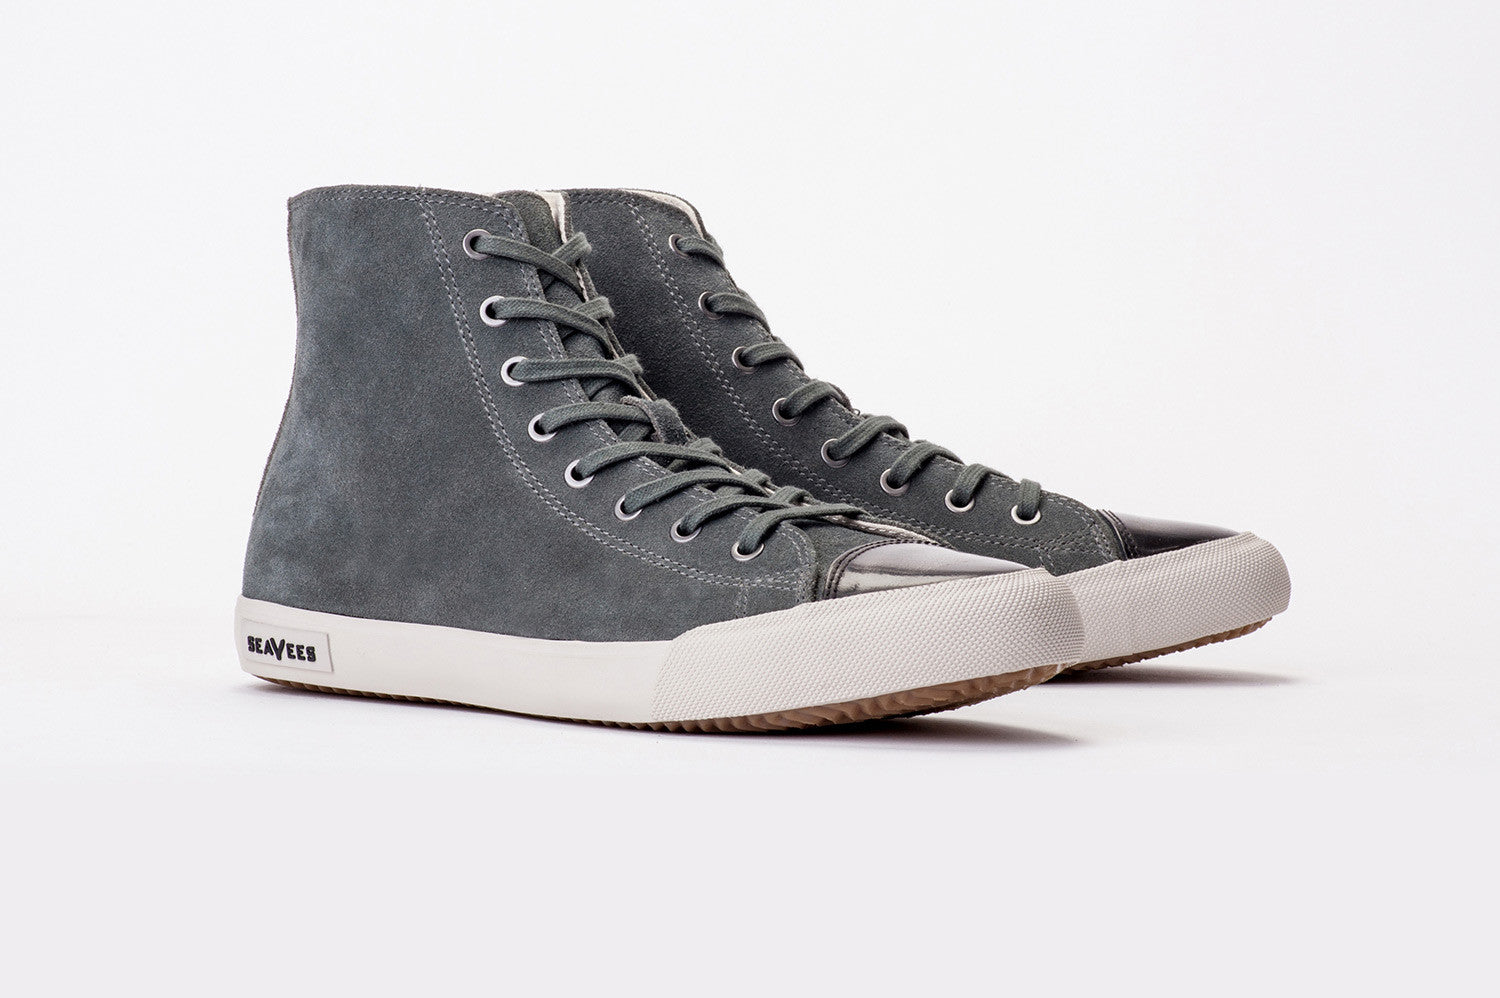 Mens - Army Issue High Sneaker Wintertide - Charcoal Grey